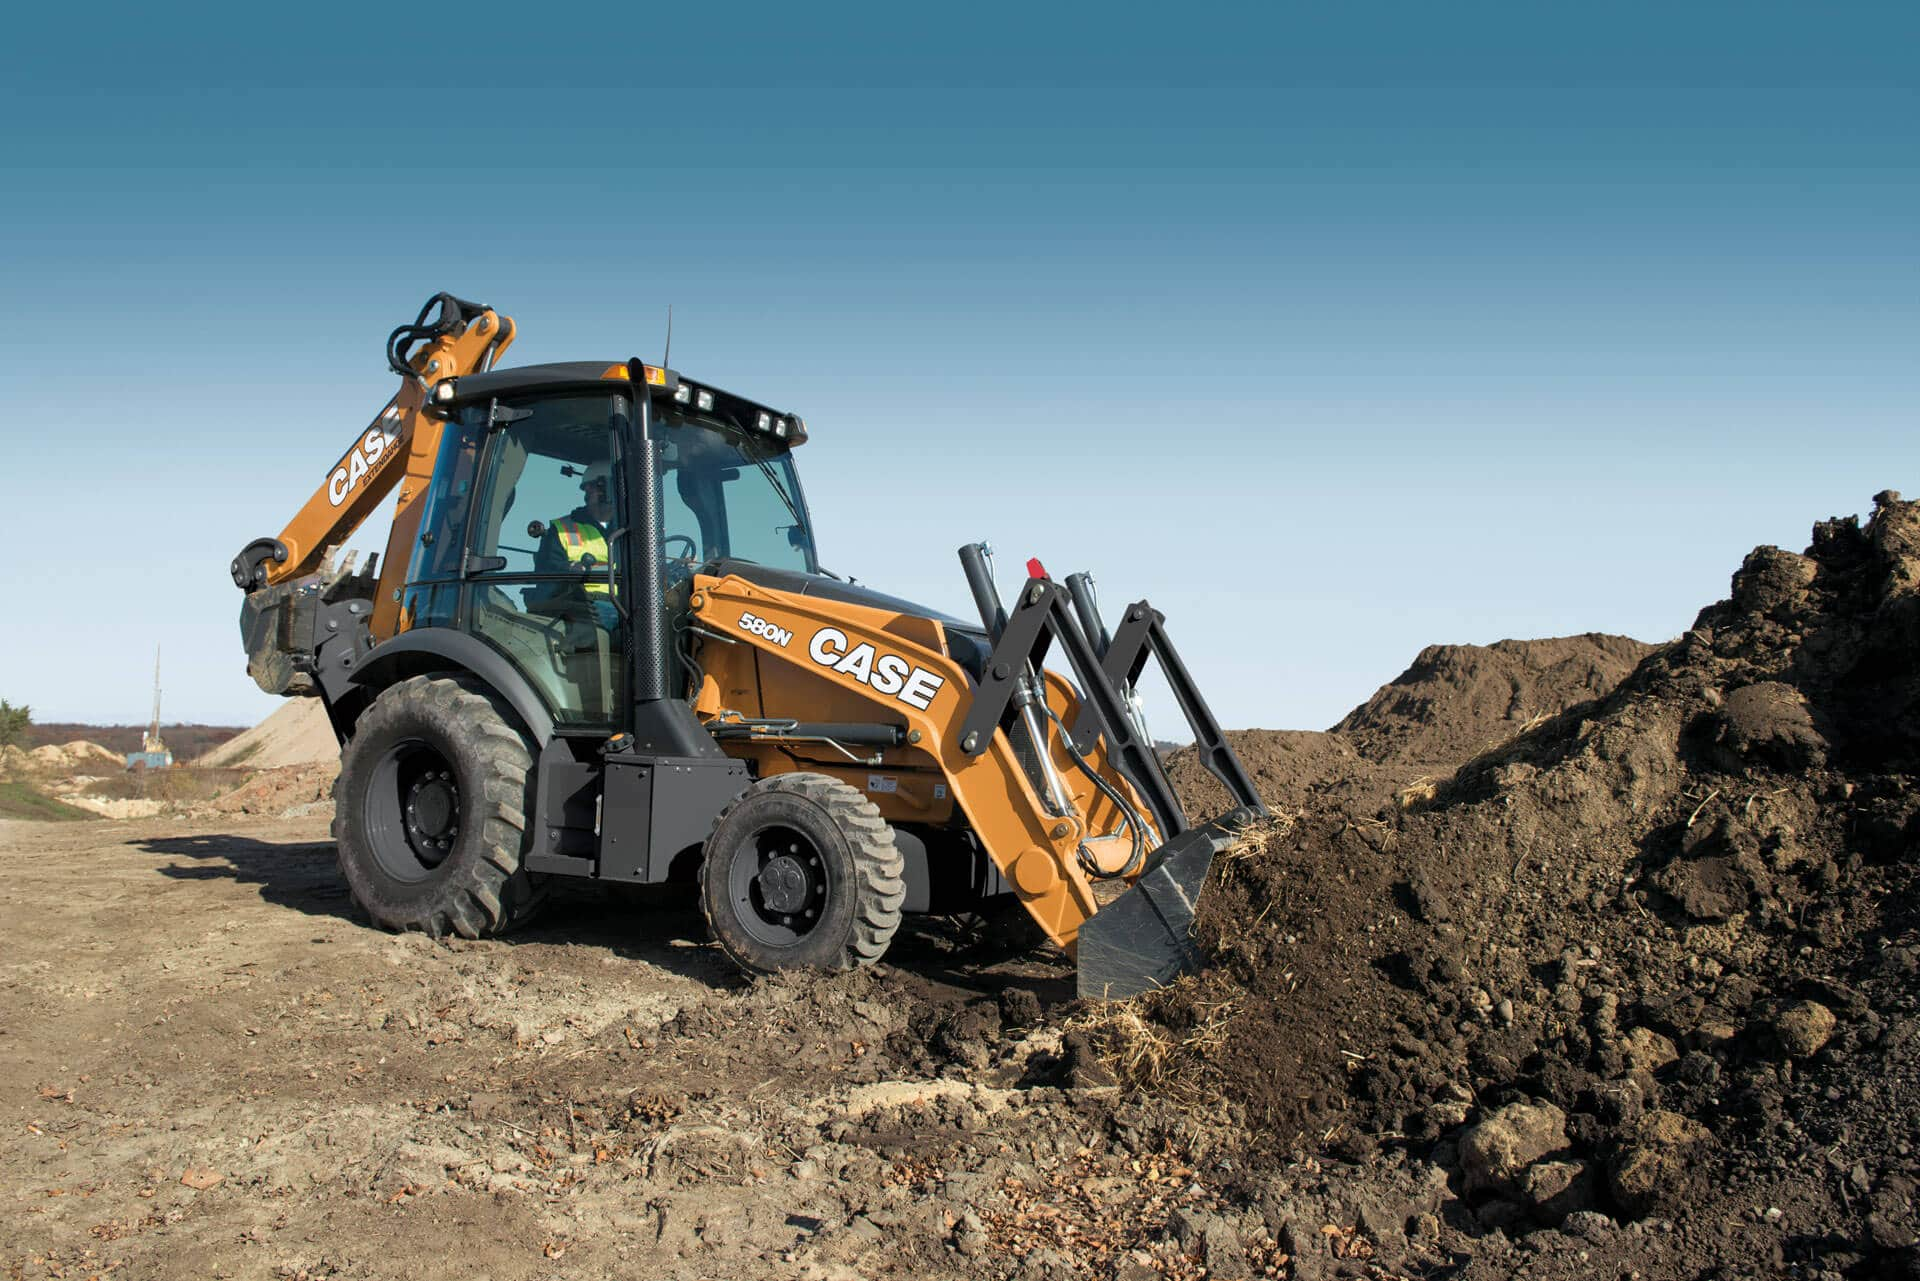 CASE 580N Backhoe Loader | CASE Construction Equipment